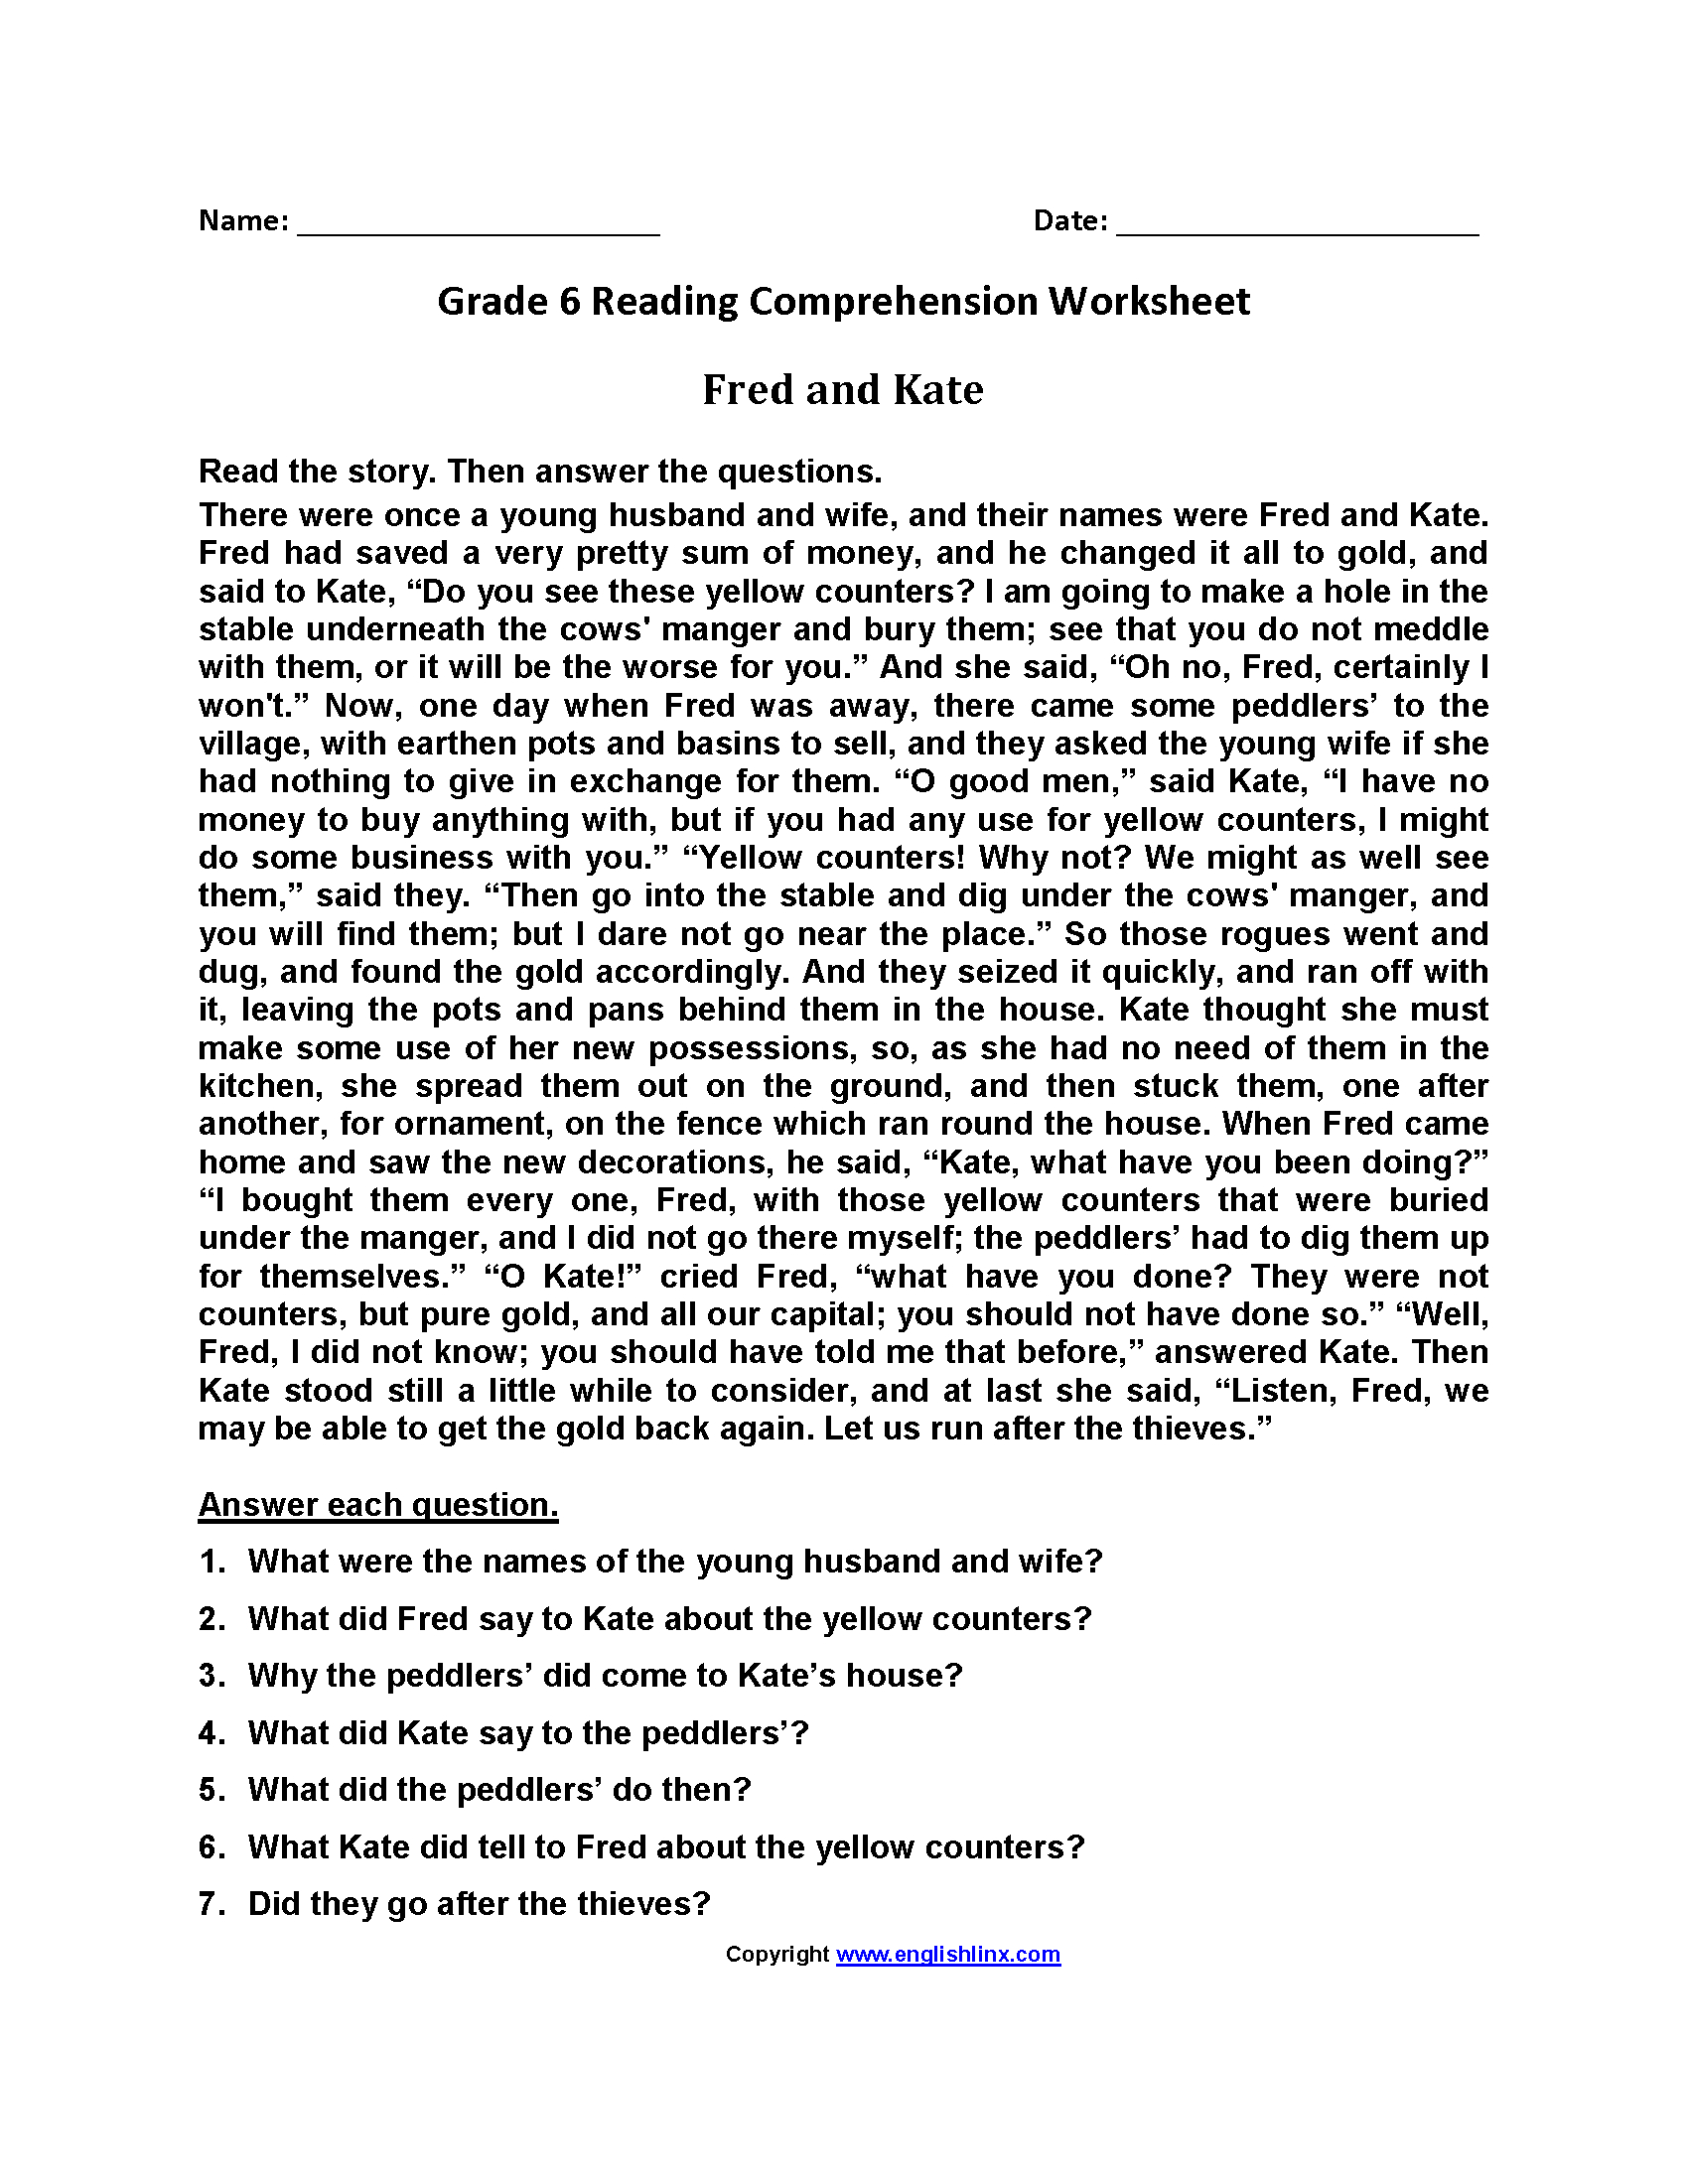 Printable Comprehension Worksheets For Grade 6